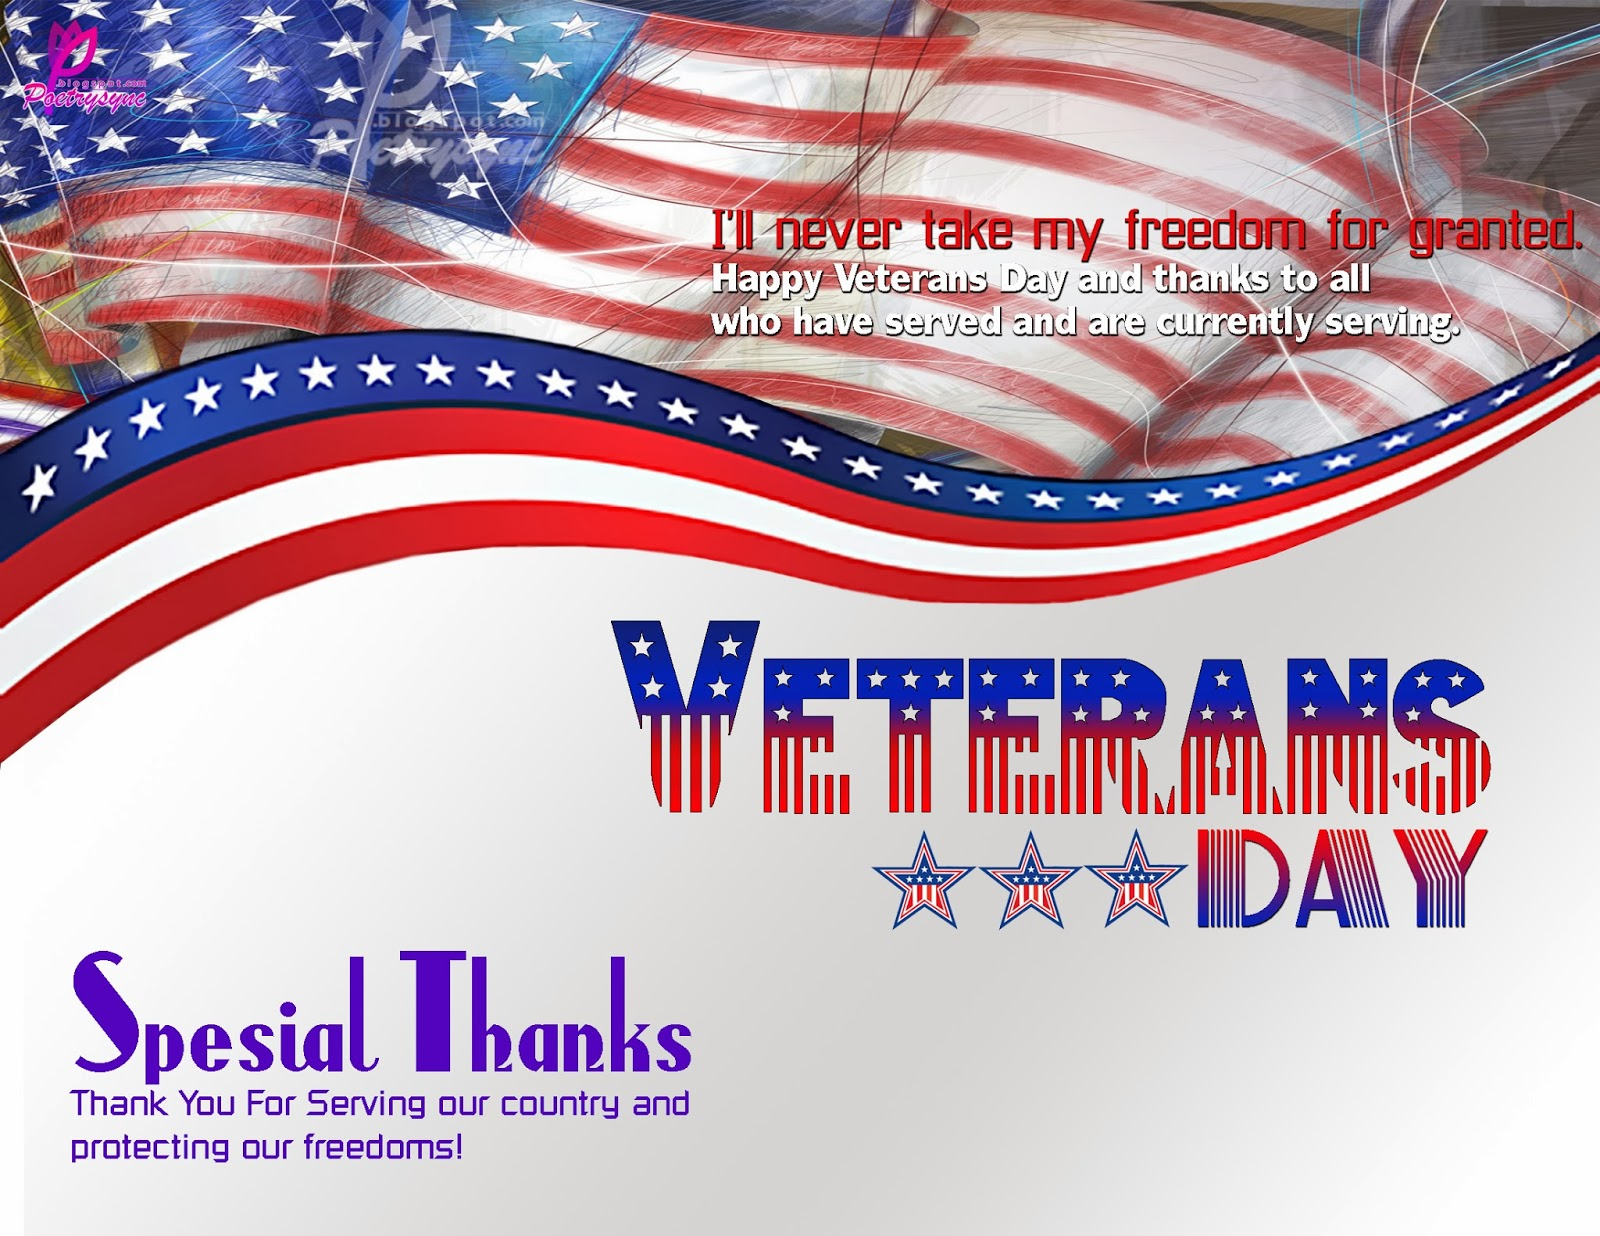 Veterans Day Greetings 2016